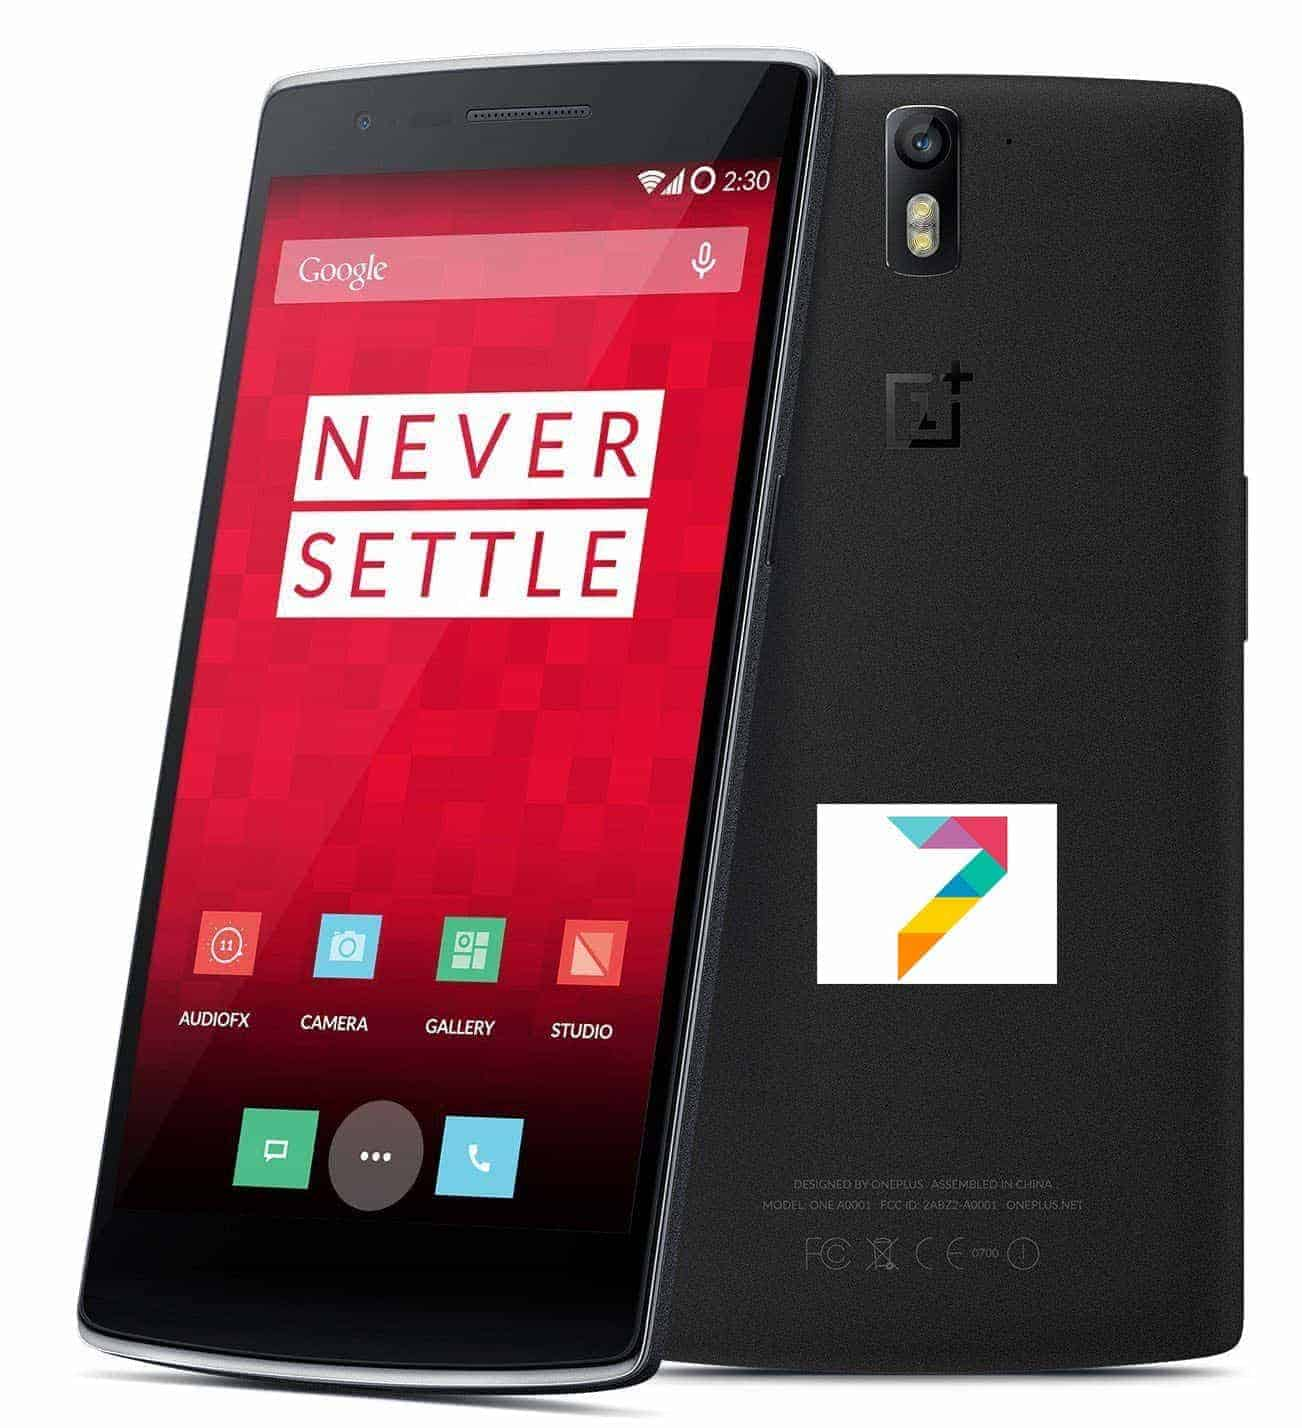 [ROM] Official Miui 7 Ported Rom For Oneplus One